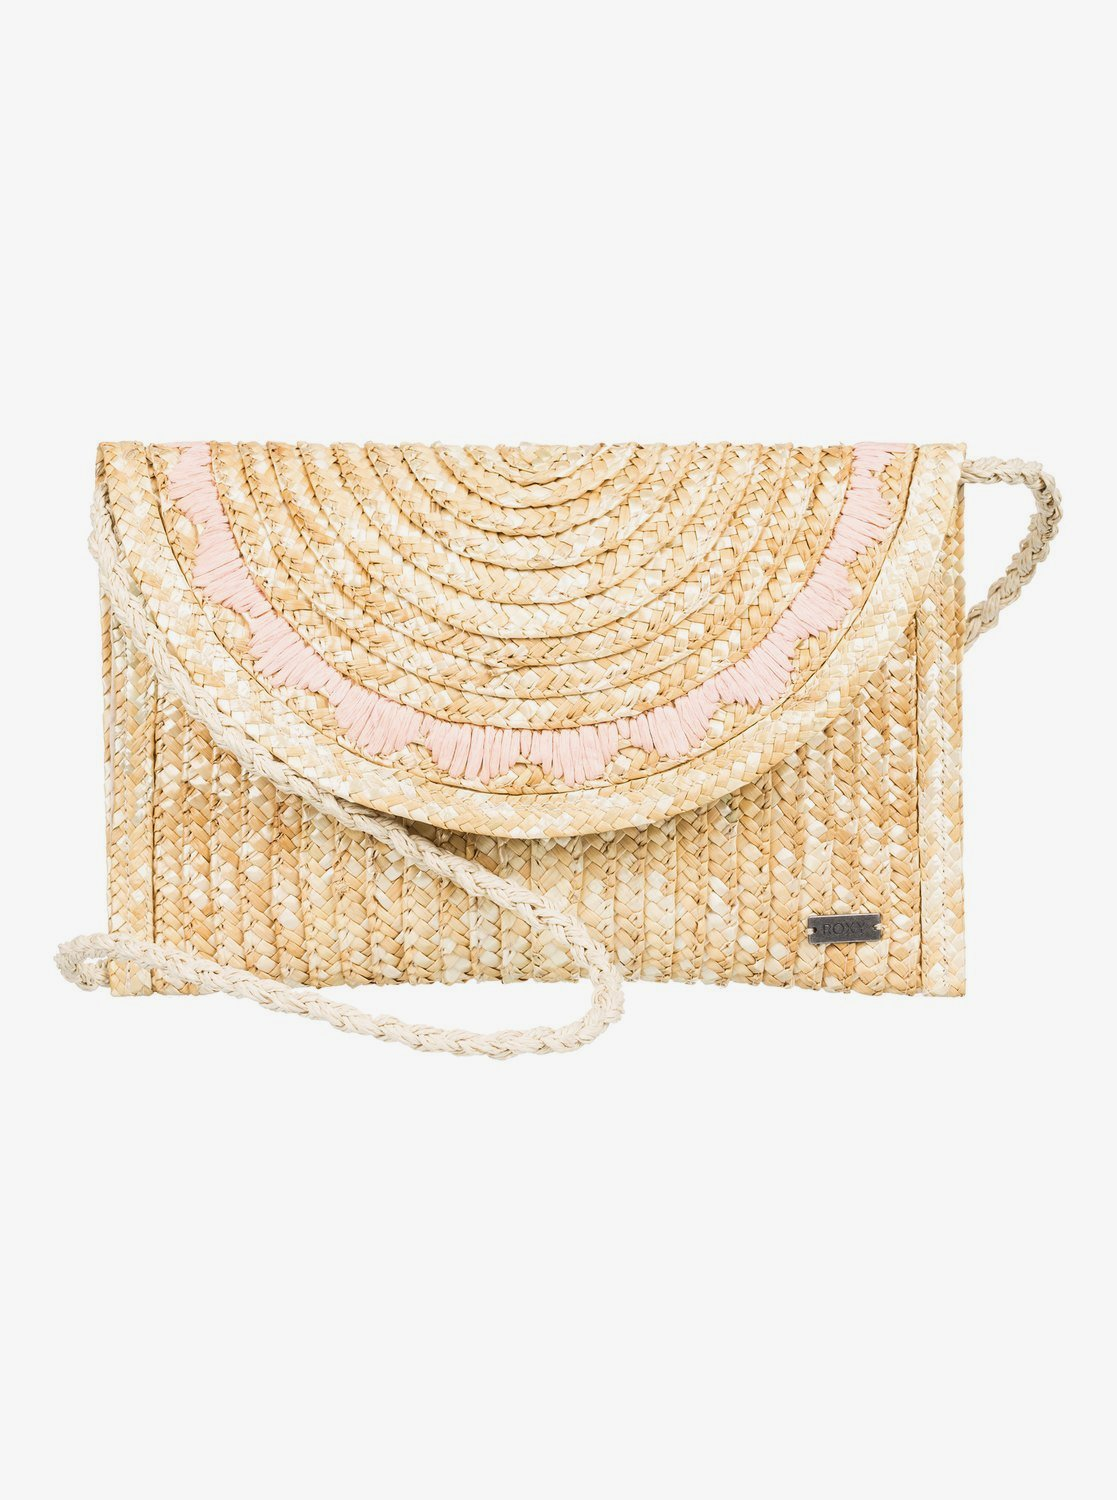 Roxy Salty But Sweet Straw Shoulder Bag